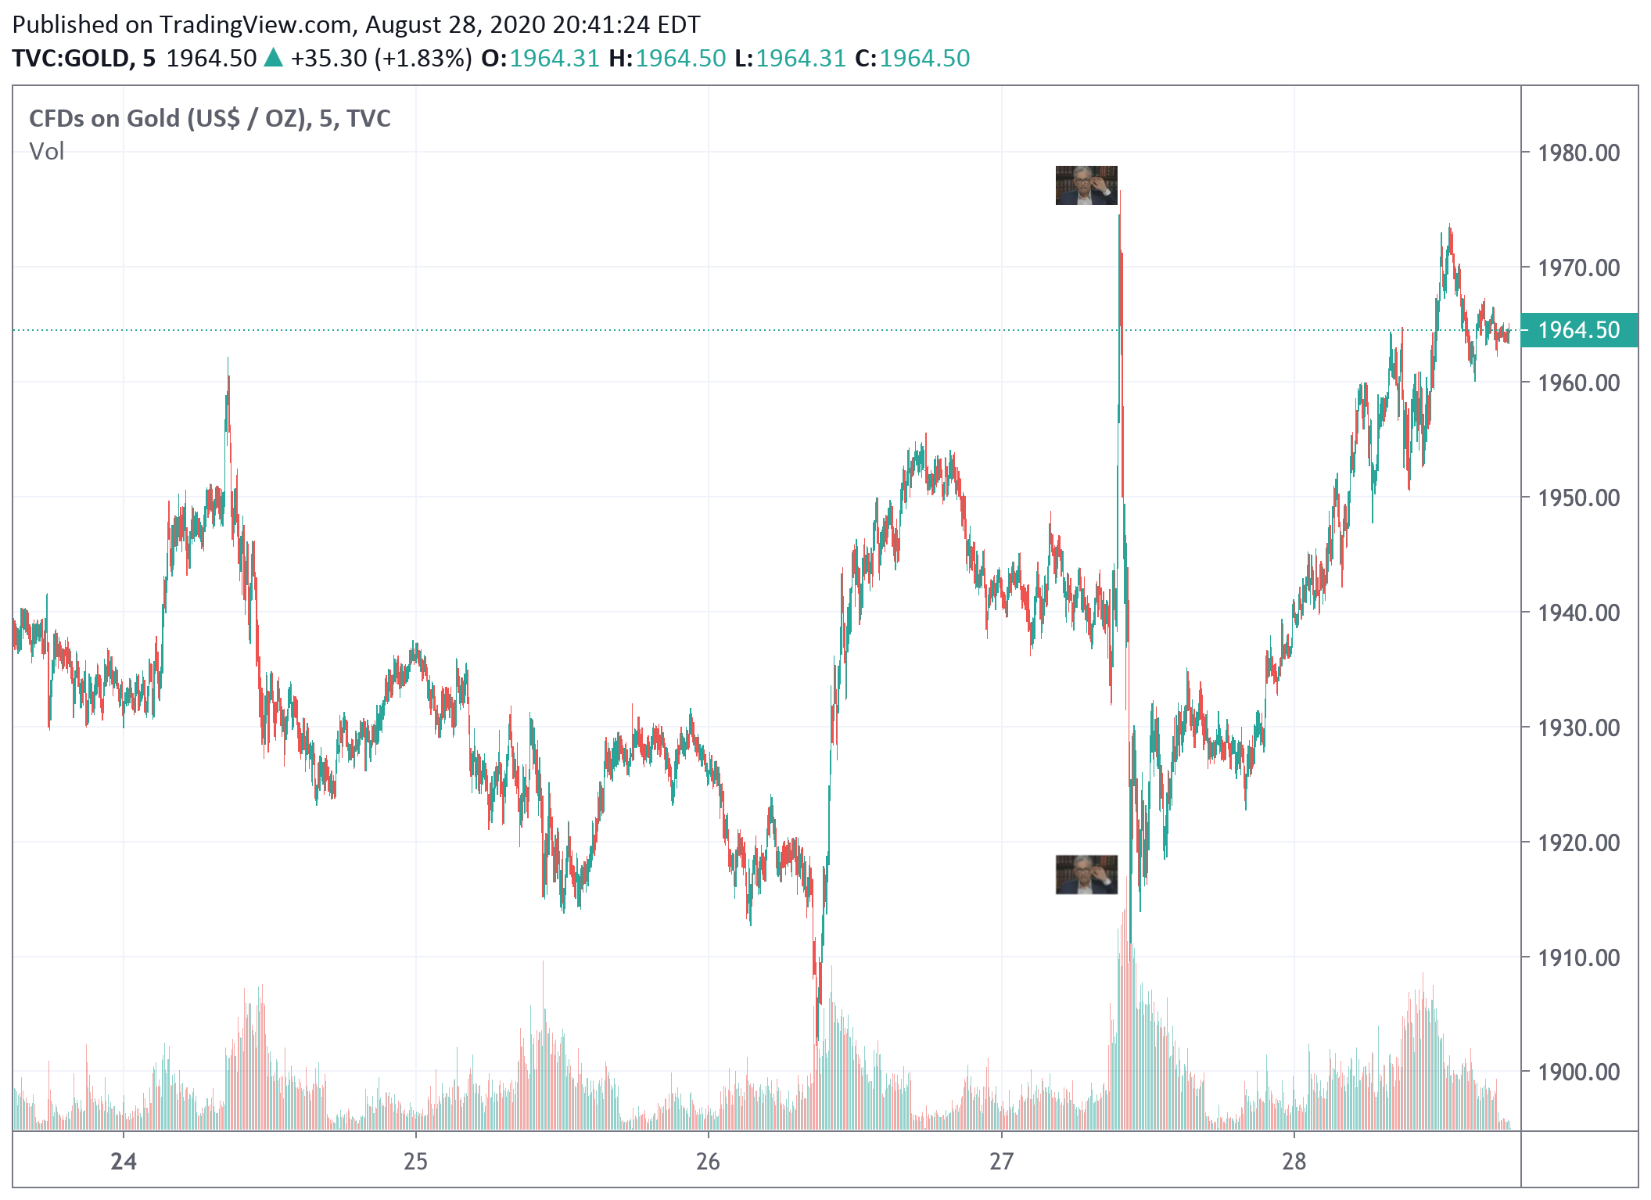 Gold price intervention 2020 Jackson Hole Powell Inflation Speech 3 month